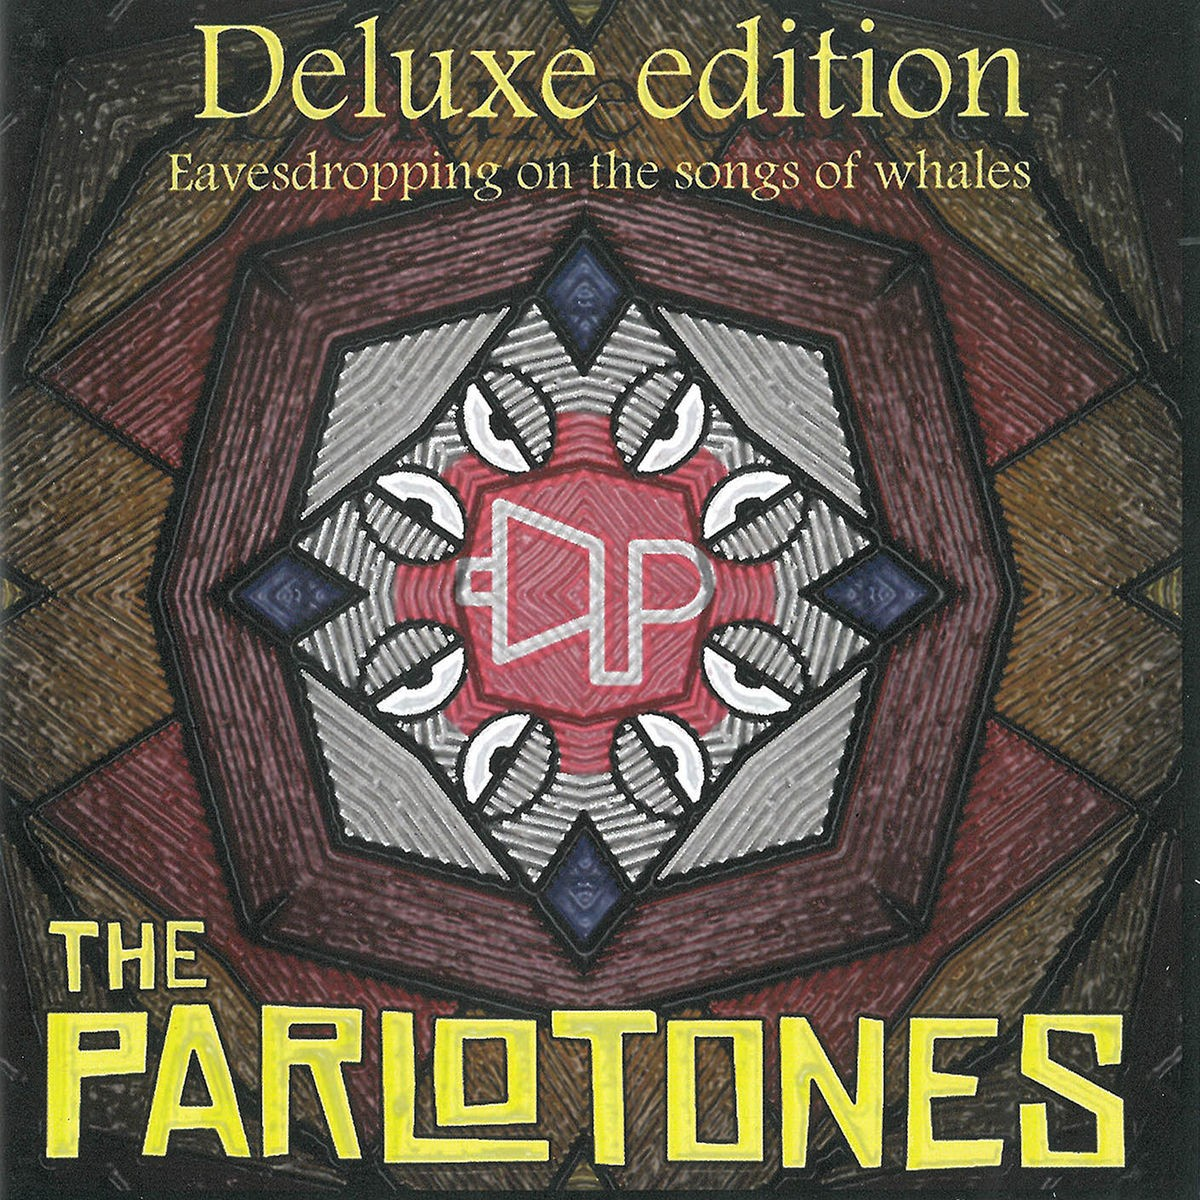 The Parlotones - Eavesdropping on the Songs of Whales (Deluxe Edition) DVD+CD - SLDVD 431